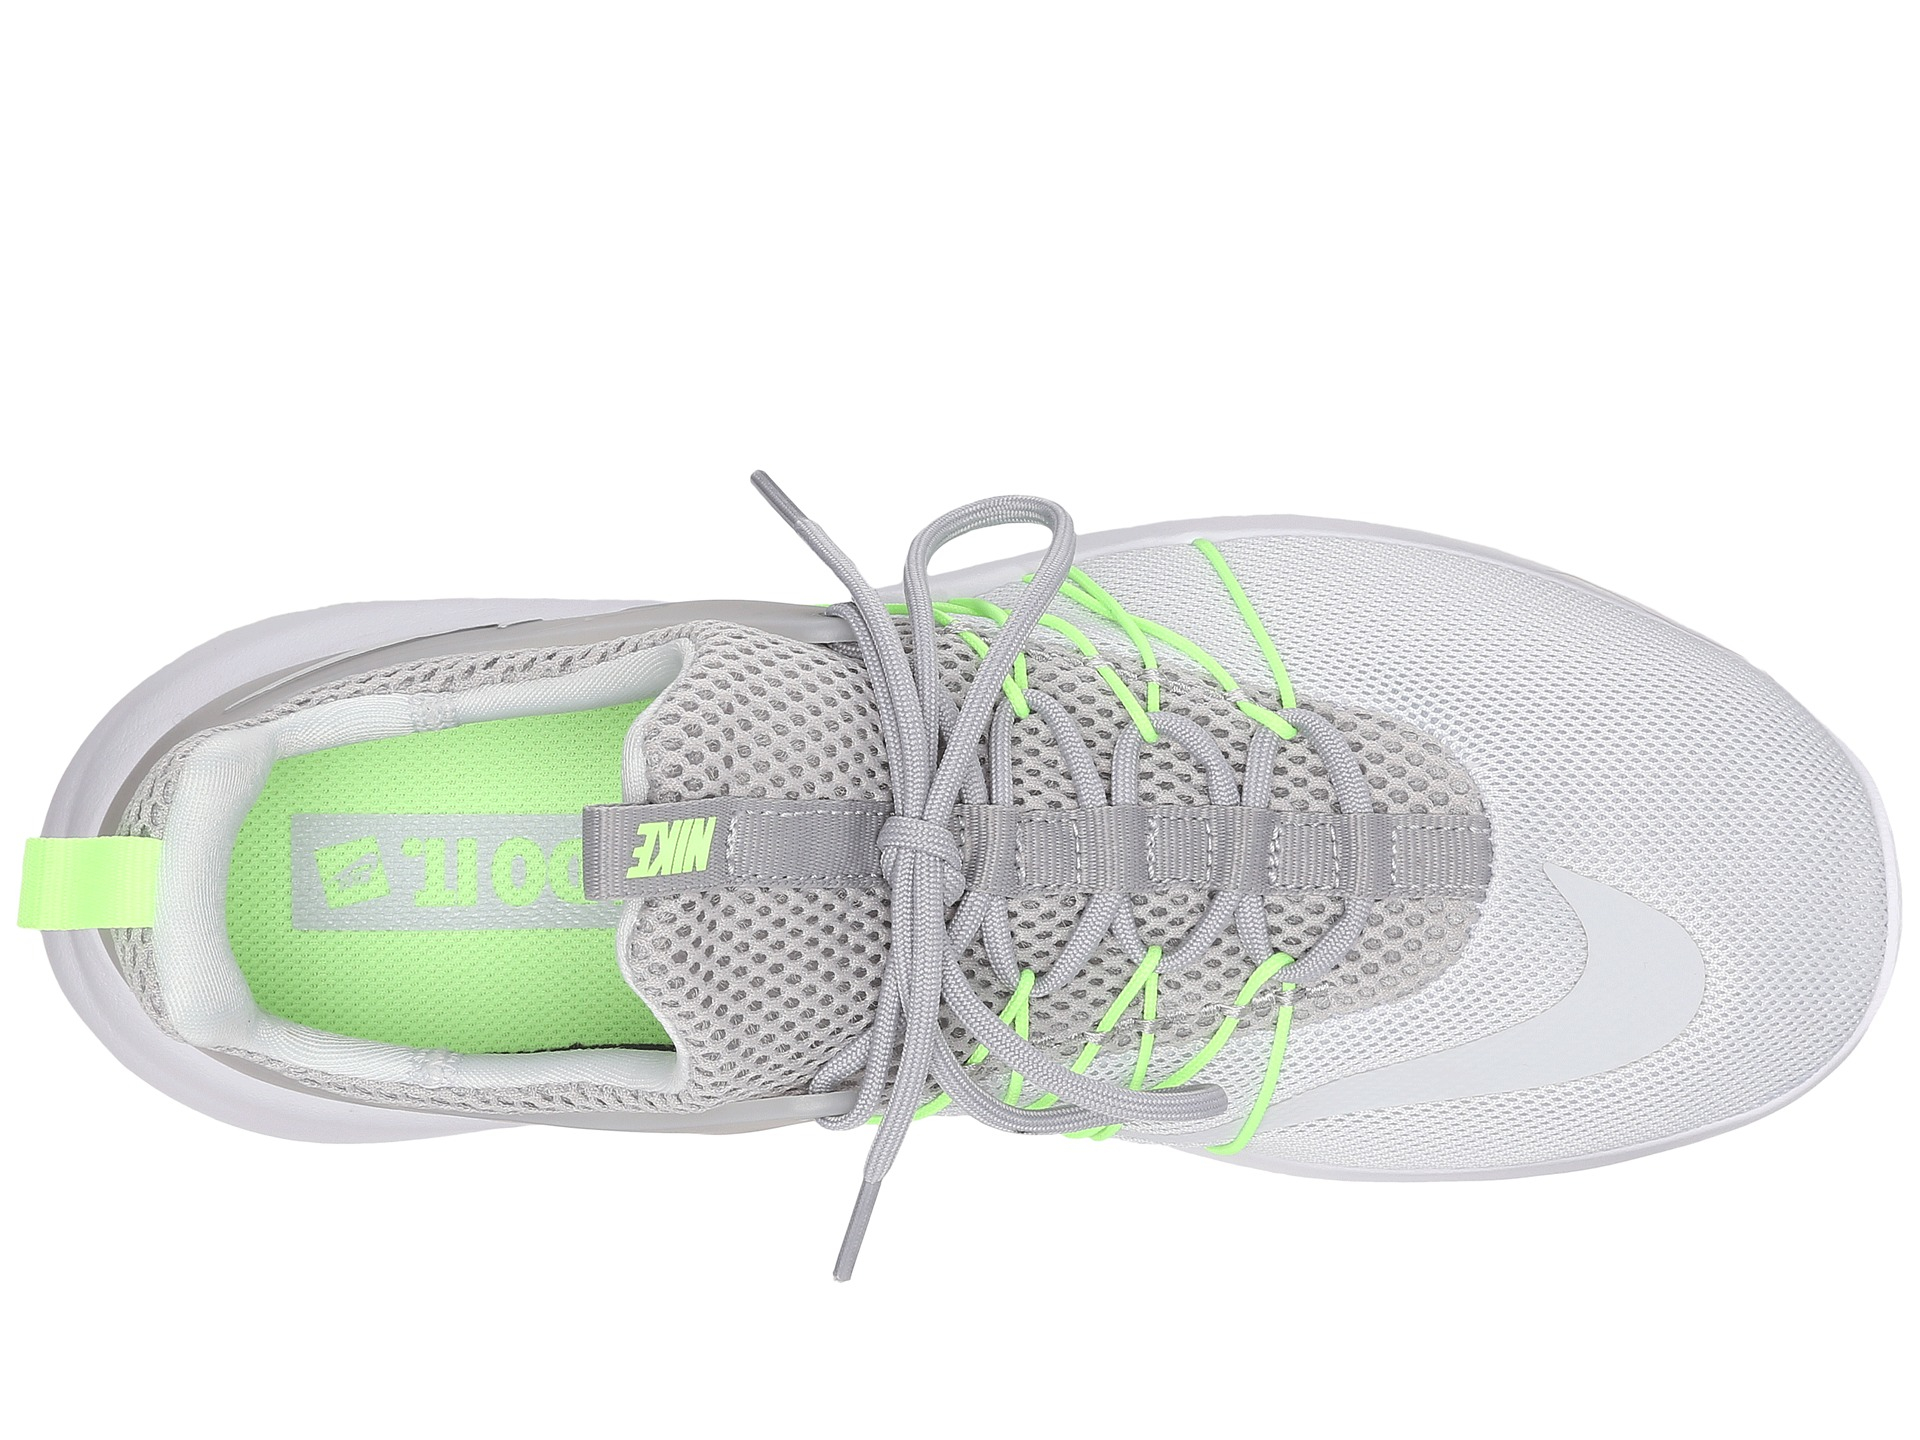 c7749fe2a2a5 ... promo code for lyst nike darwin in gray 7170d e2304